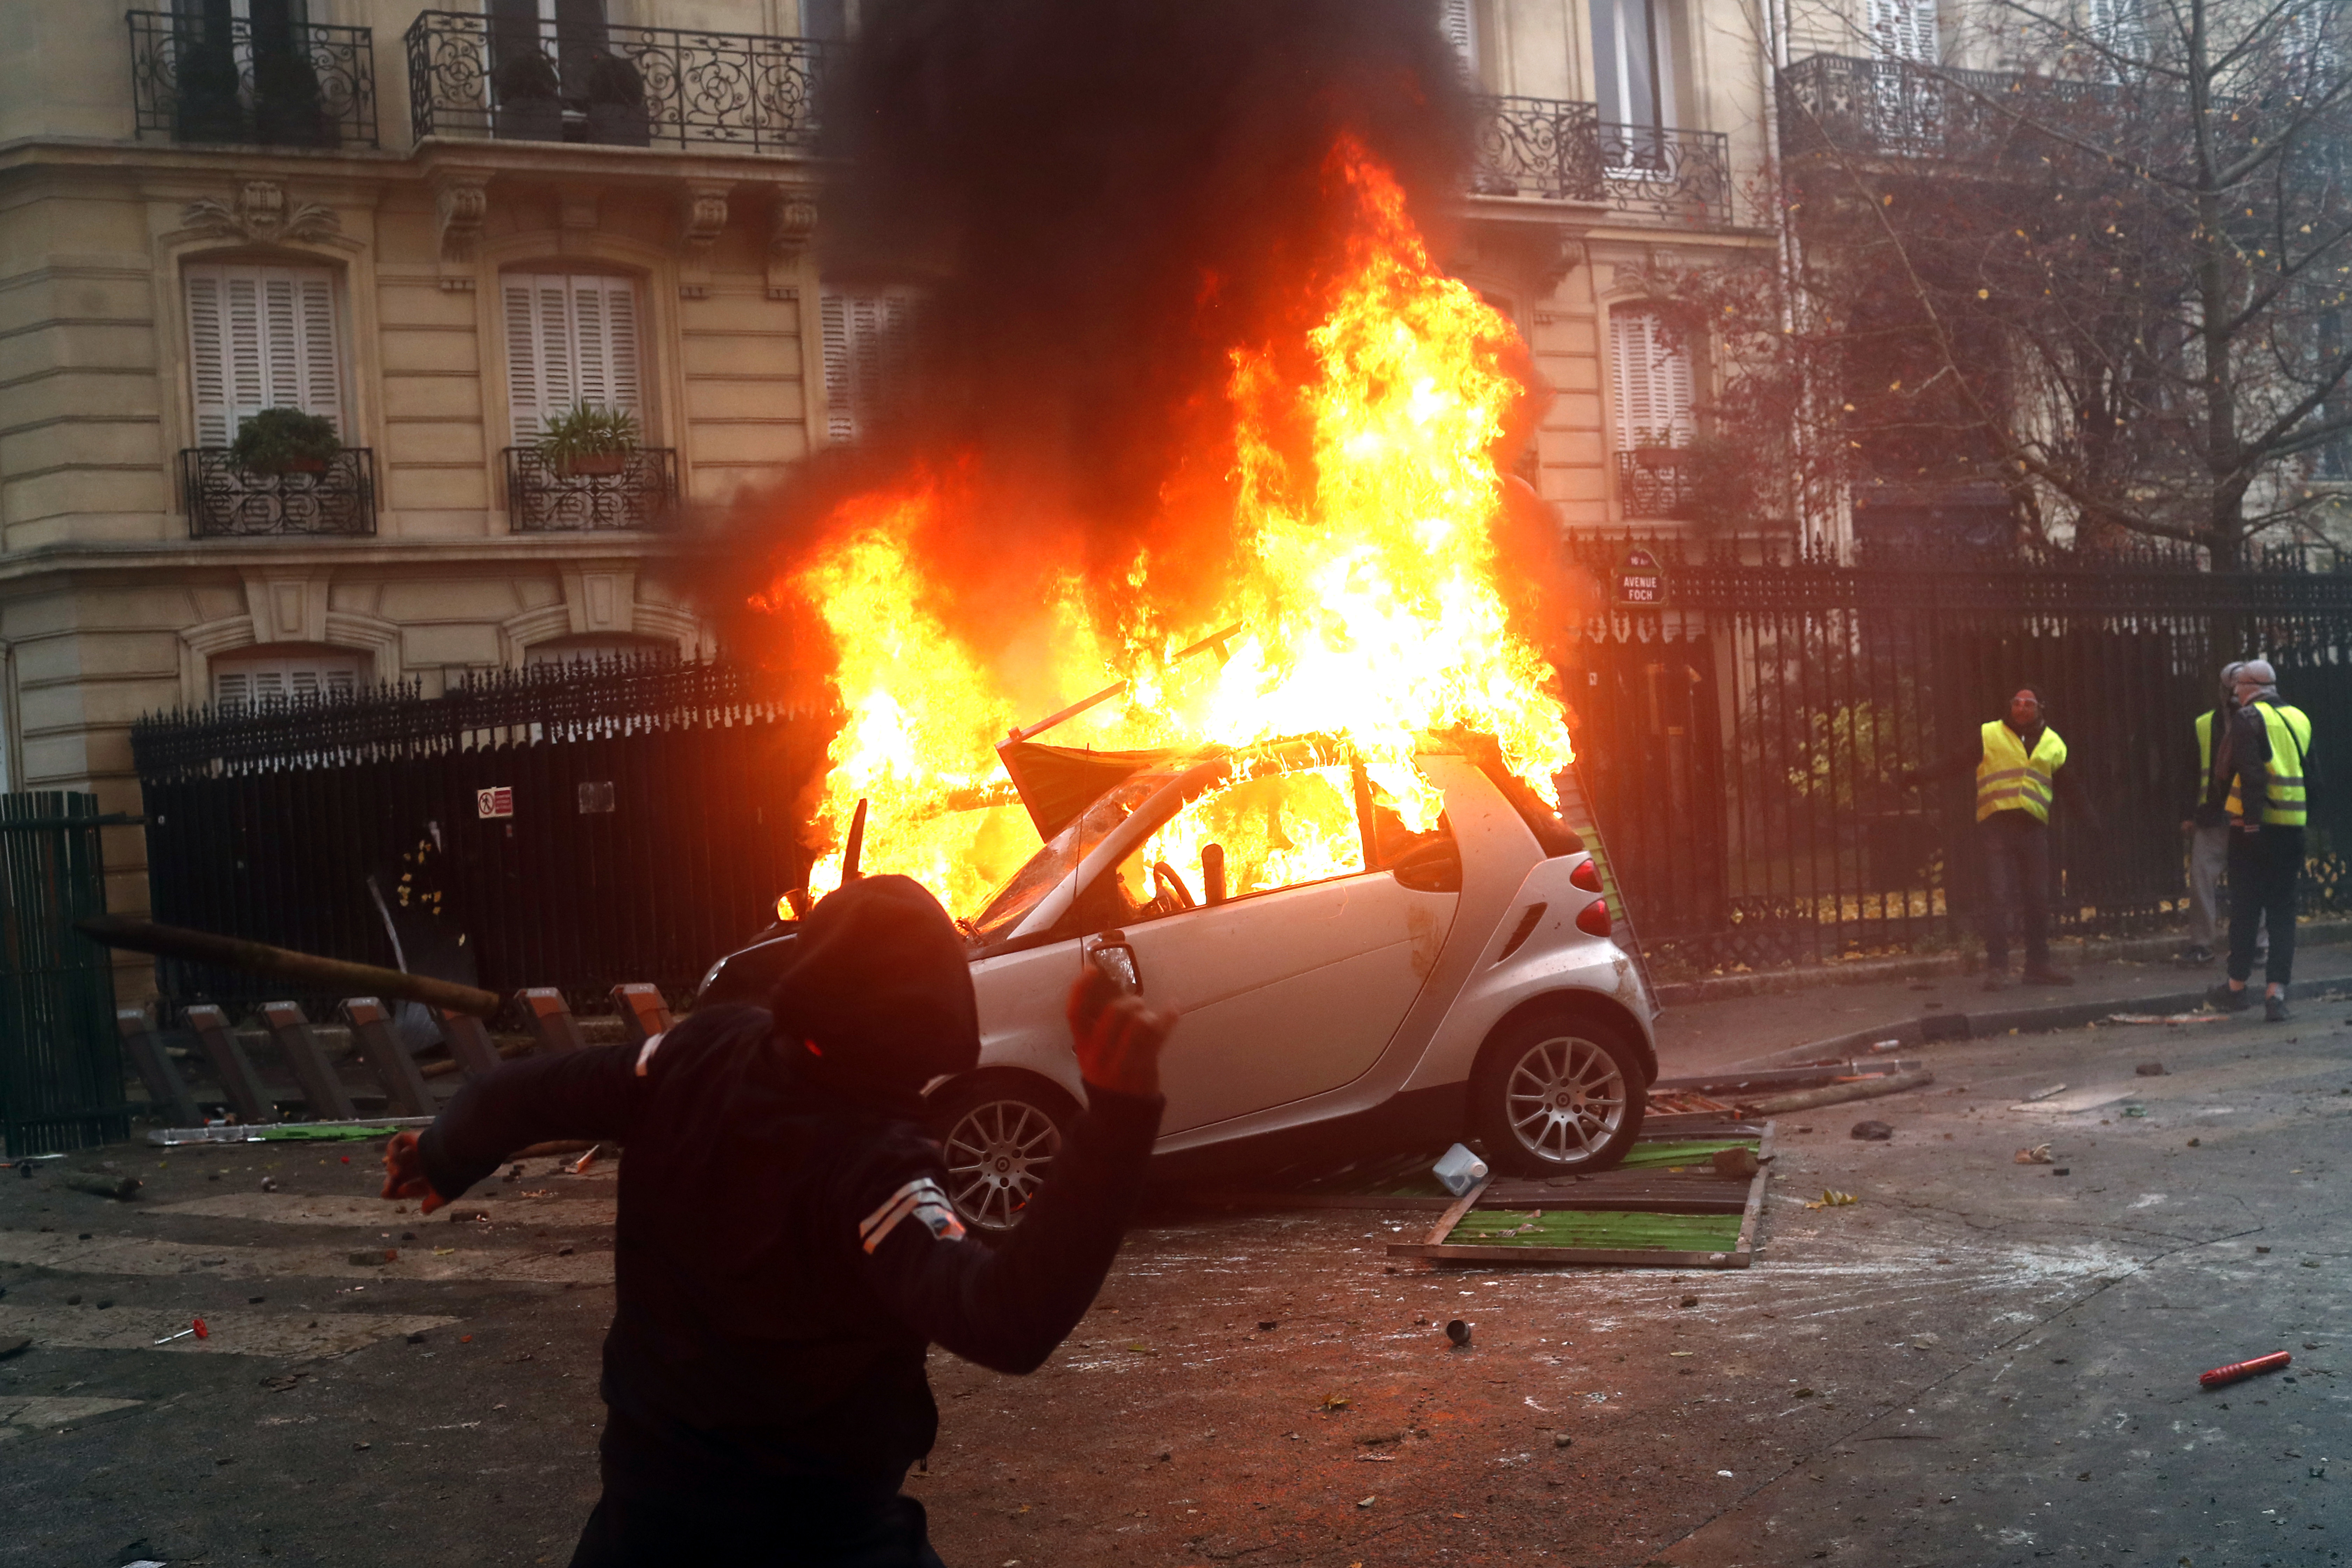 A hooded demonstrator throws an item as a car buns during a demonstration Saturday, Dec.1, 2018 in Paris. Protesters angry about rising taxes clashed with French police for a third straight weekend and over 100 were arrested after pockets of demonstrators built barricades in the middle of streets in central Paris, lit fires and threw rocks at officers Saturday. (AP Photo/Thibault Camus)